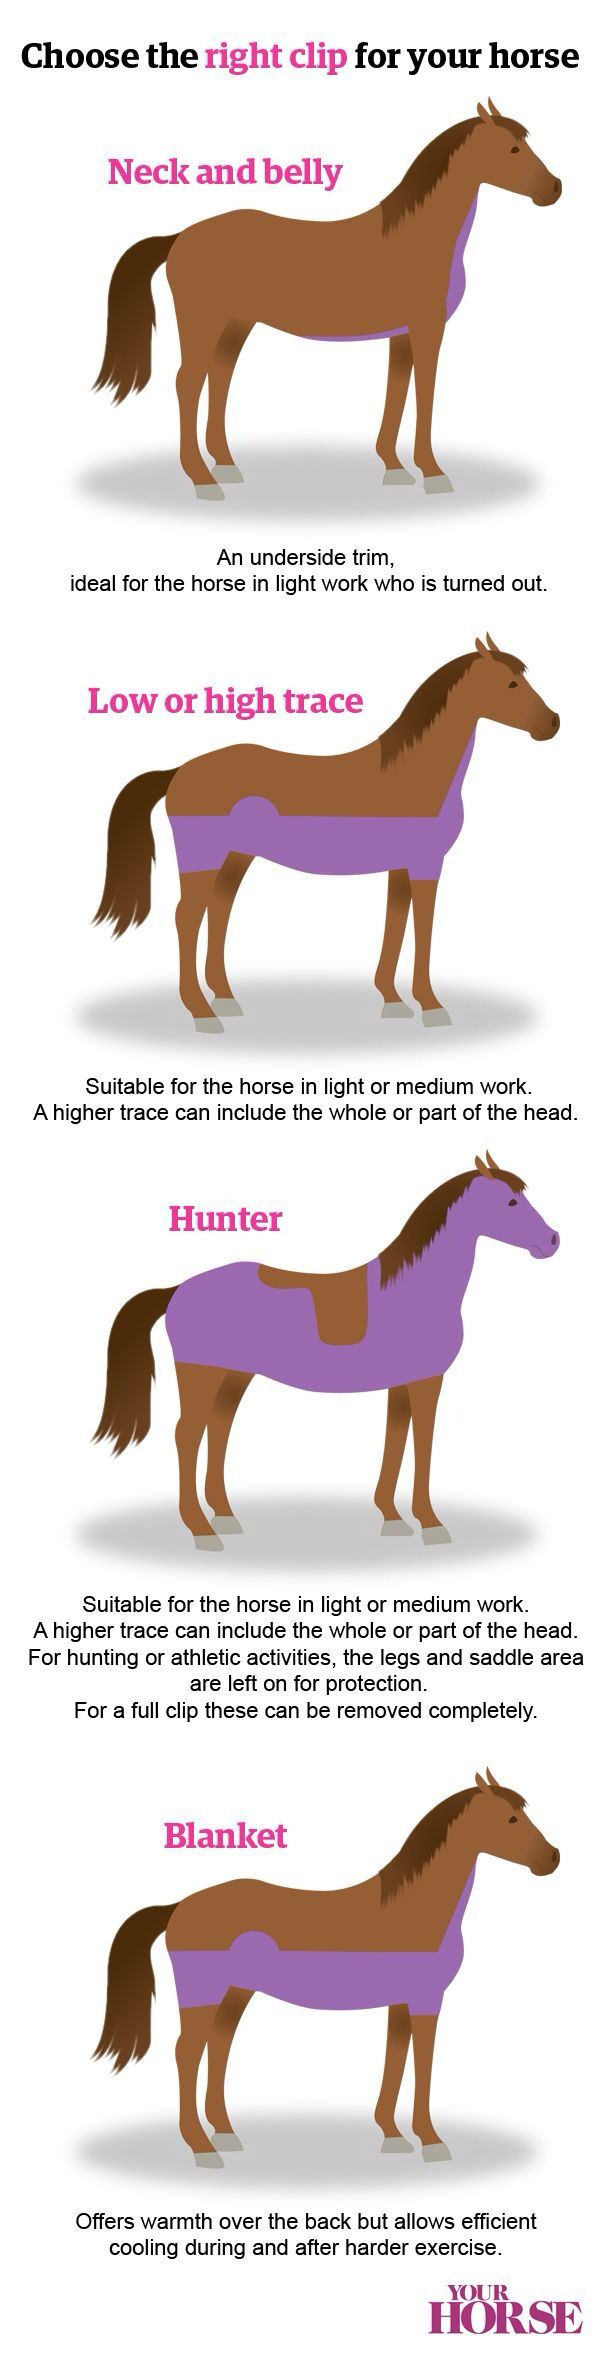 Choosing The Right Clip For Your Horse